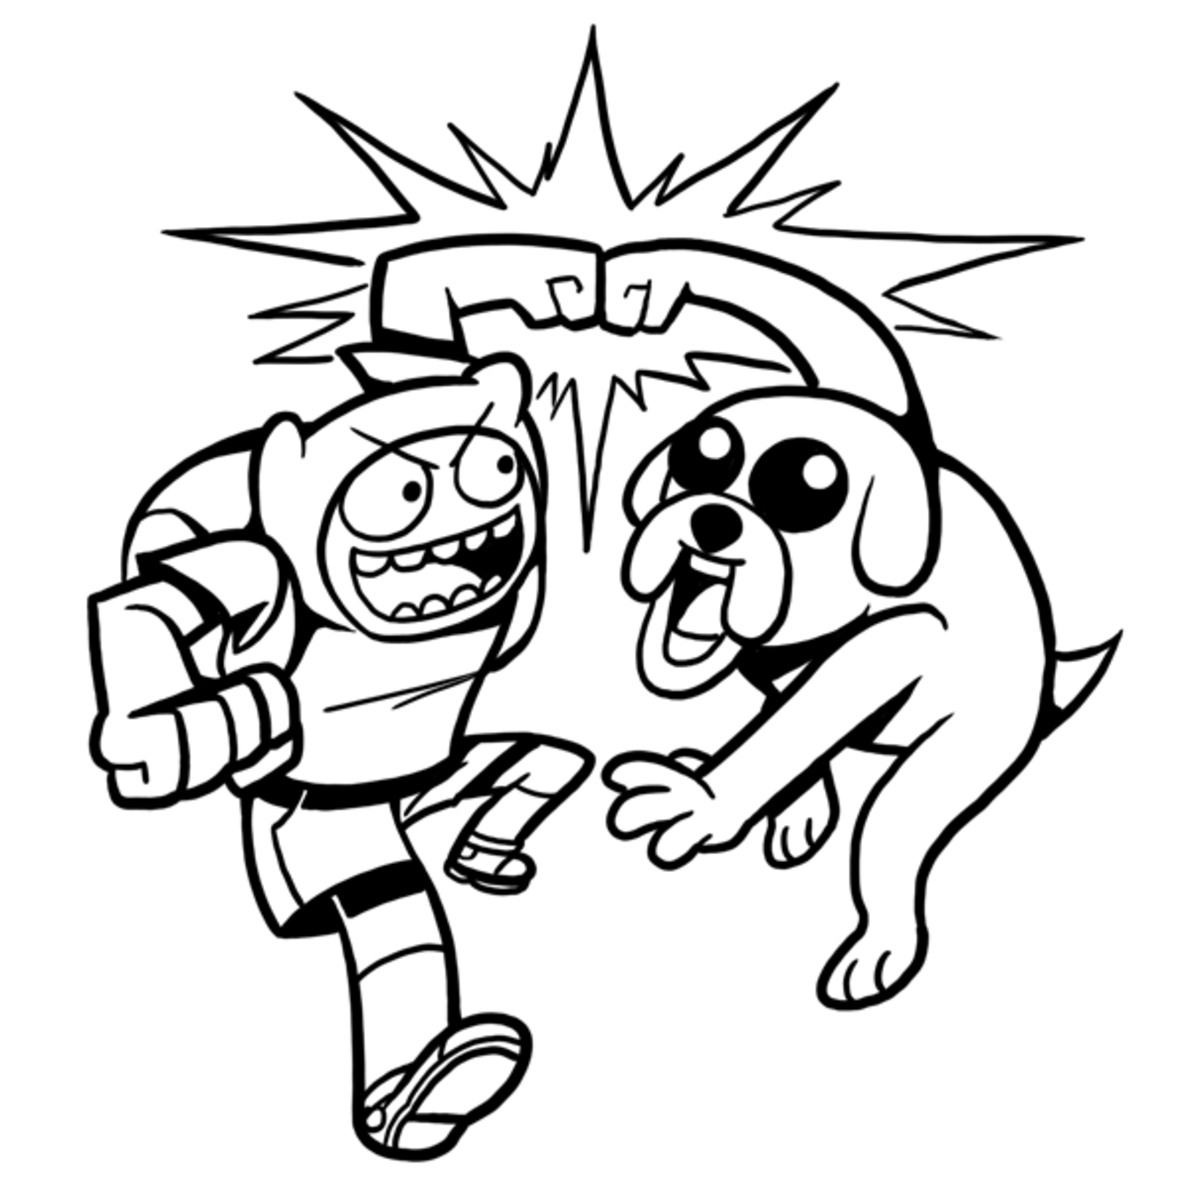 Finn and Jake doing a power fist!